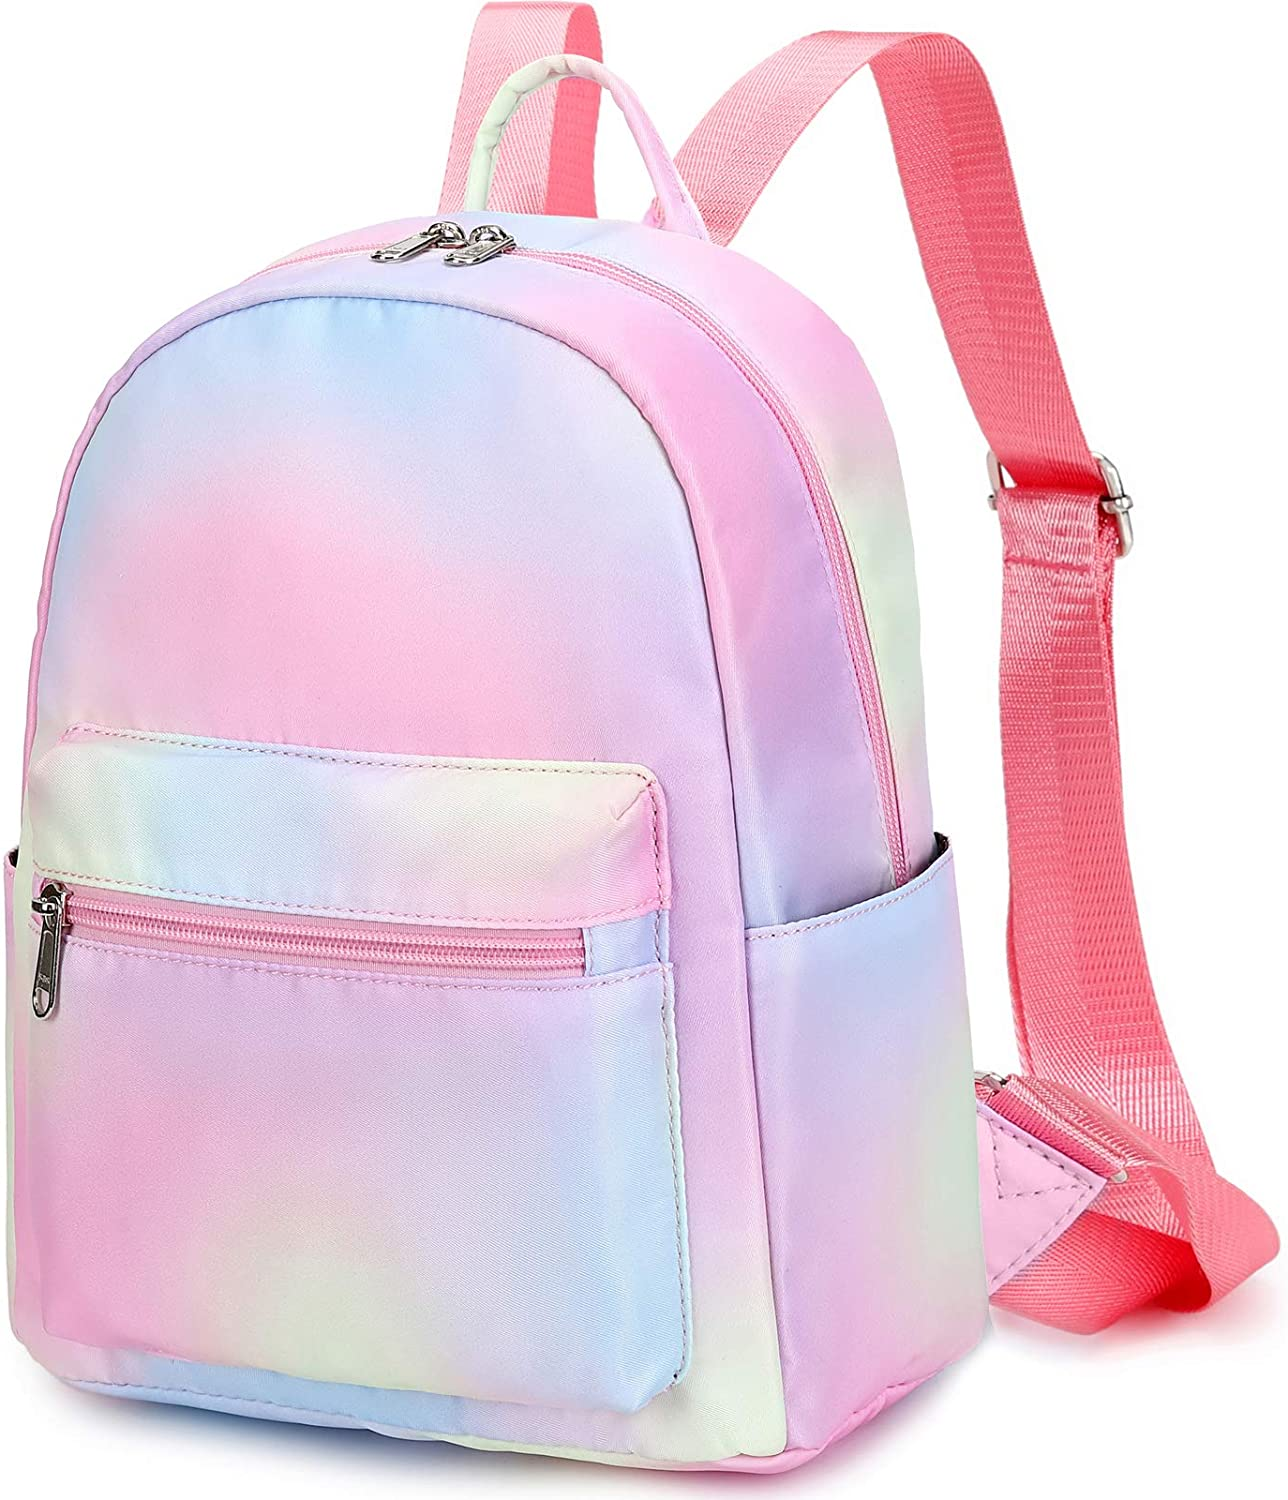 ILEEY Sunflower Eye Strange Bright School Backpack Computer Book Bag Travel Hiking Camping Casual Daypack for Girls Boys Men and Women